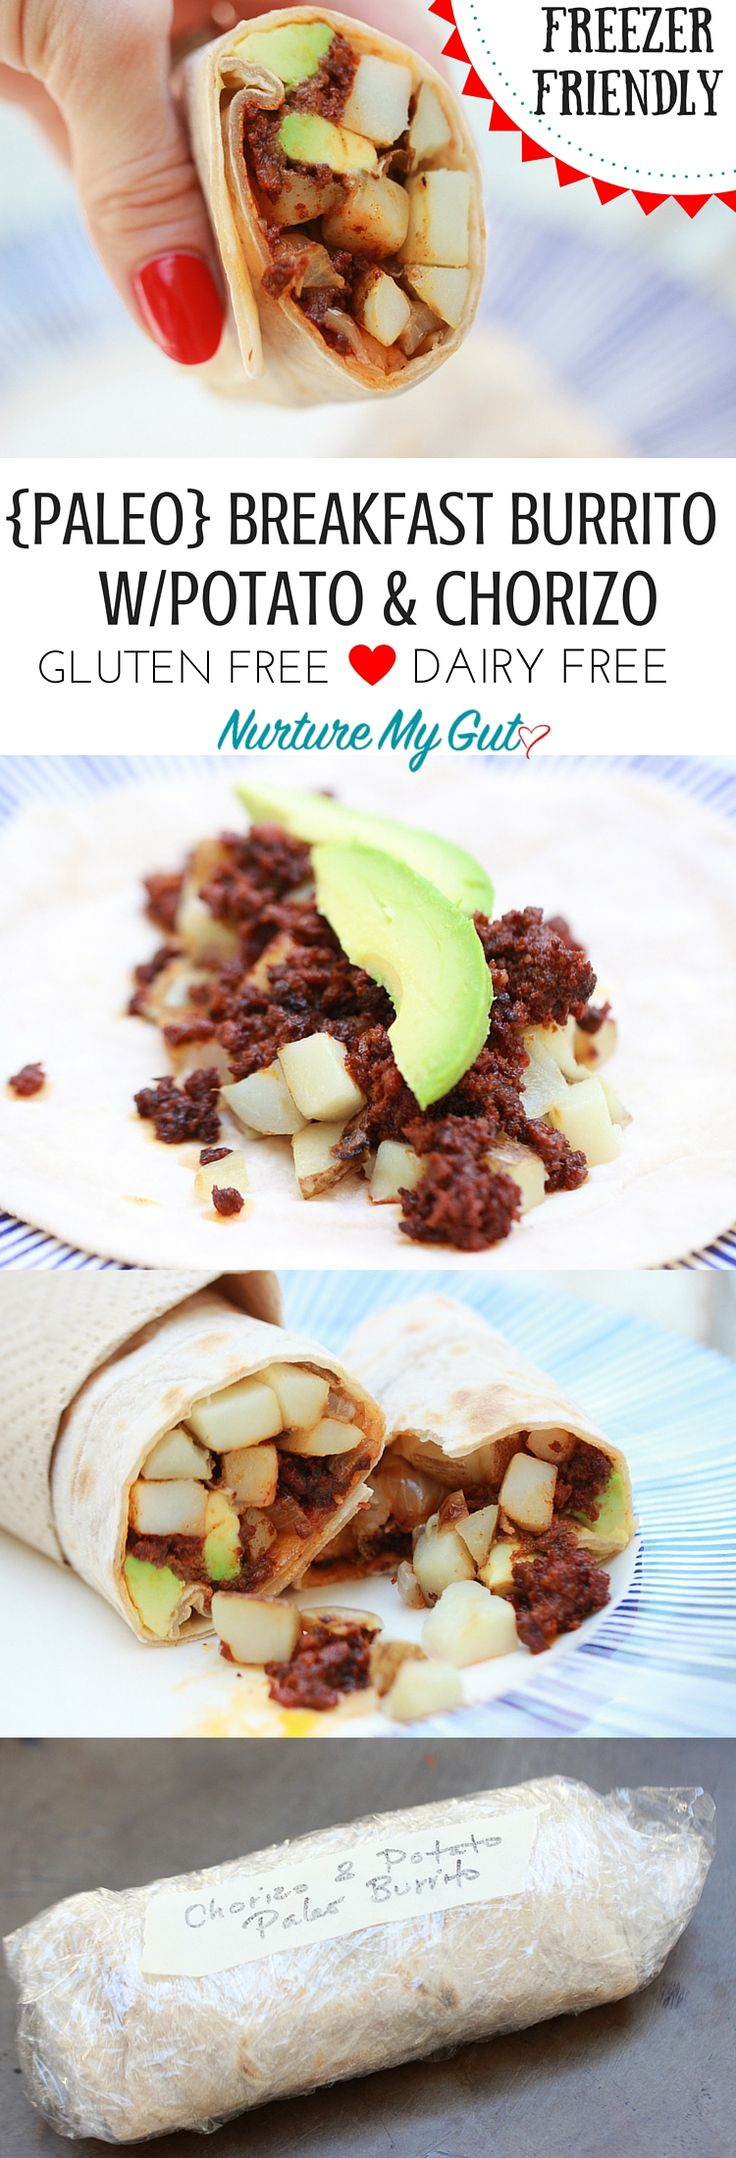 Paleo Breakfast Burritos with Potato and Chorizo.  These are gluten free/nut free/dairy free & Paleo.  Can be made ahead, frozen and reheated in the oven.  Tortillas are made with Otto's Cassava Flour.